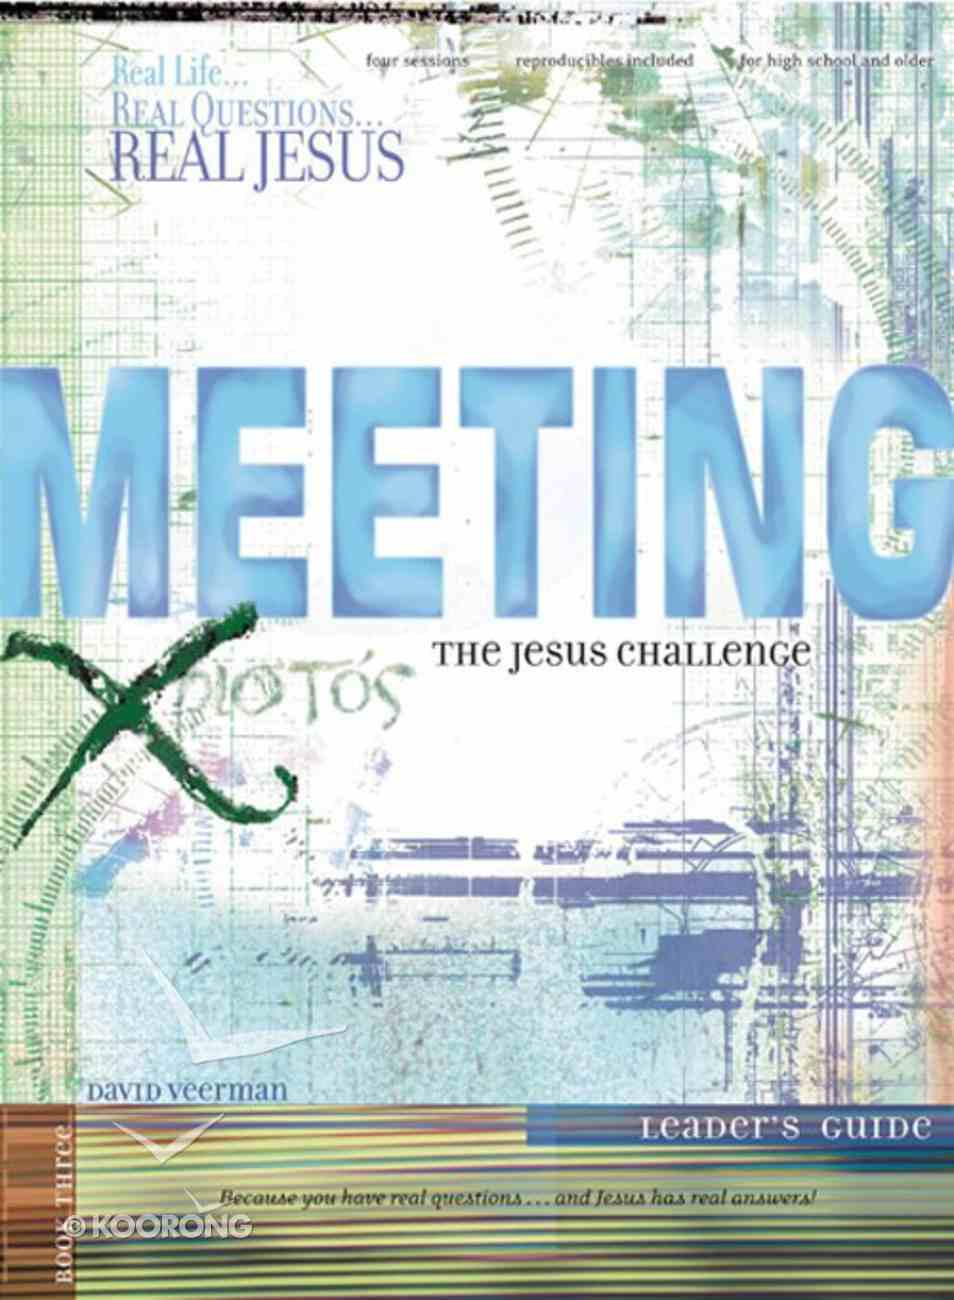 Meeting the Jesus Challenge (Leader's Guide) (#03 in Real Series) Paperback